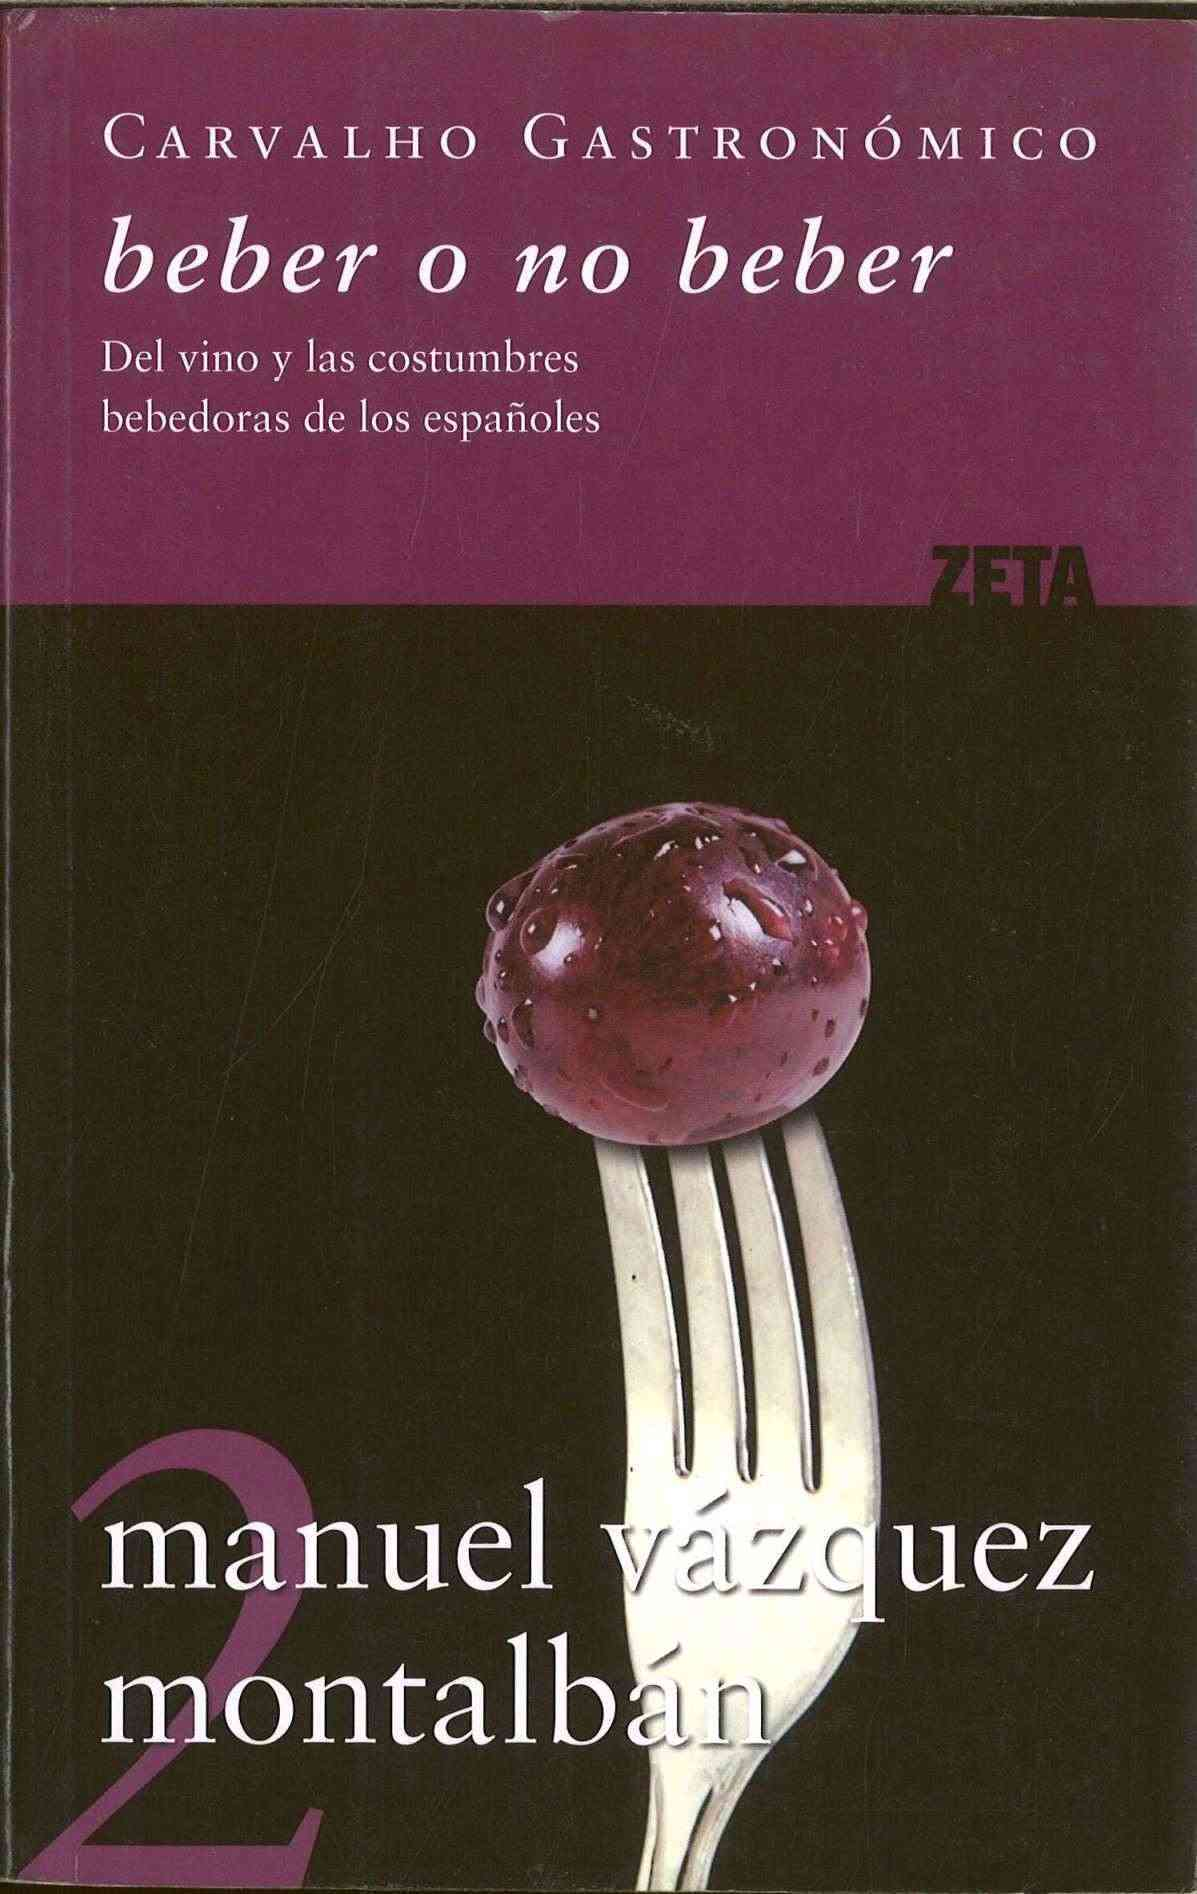 Beber o no beber/ Drinking or Not Drinking By Montalban, Manuel Vazquez